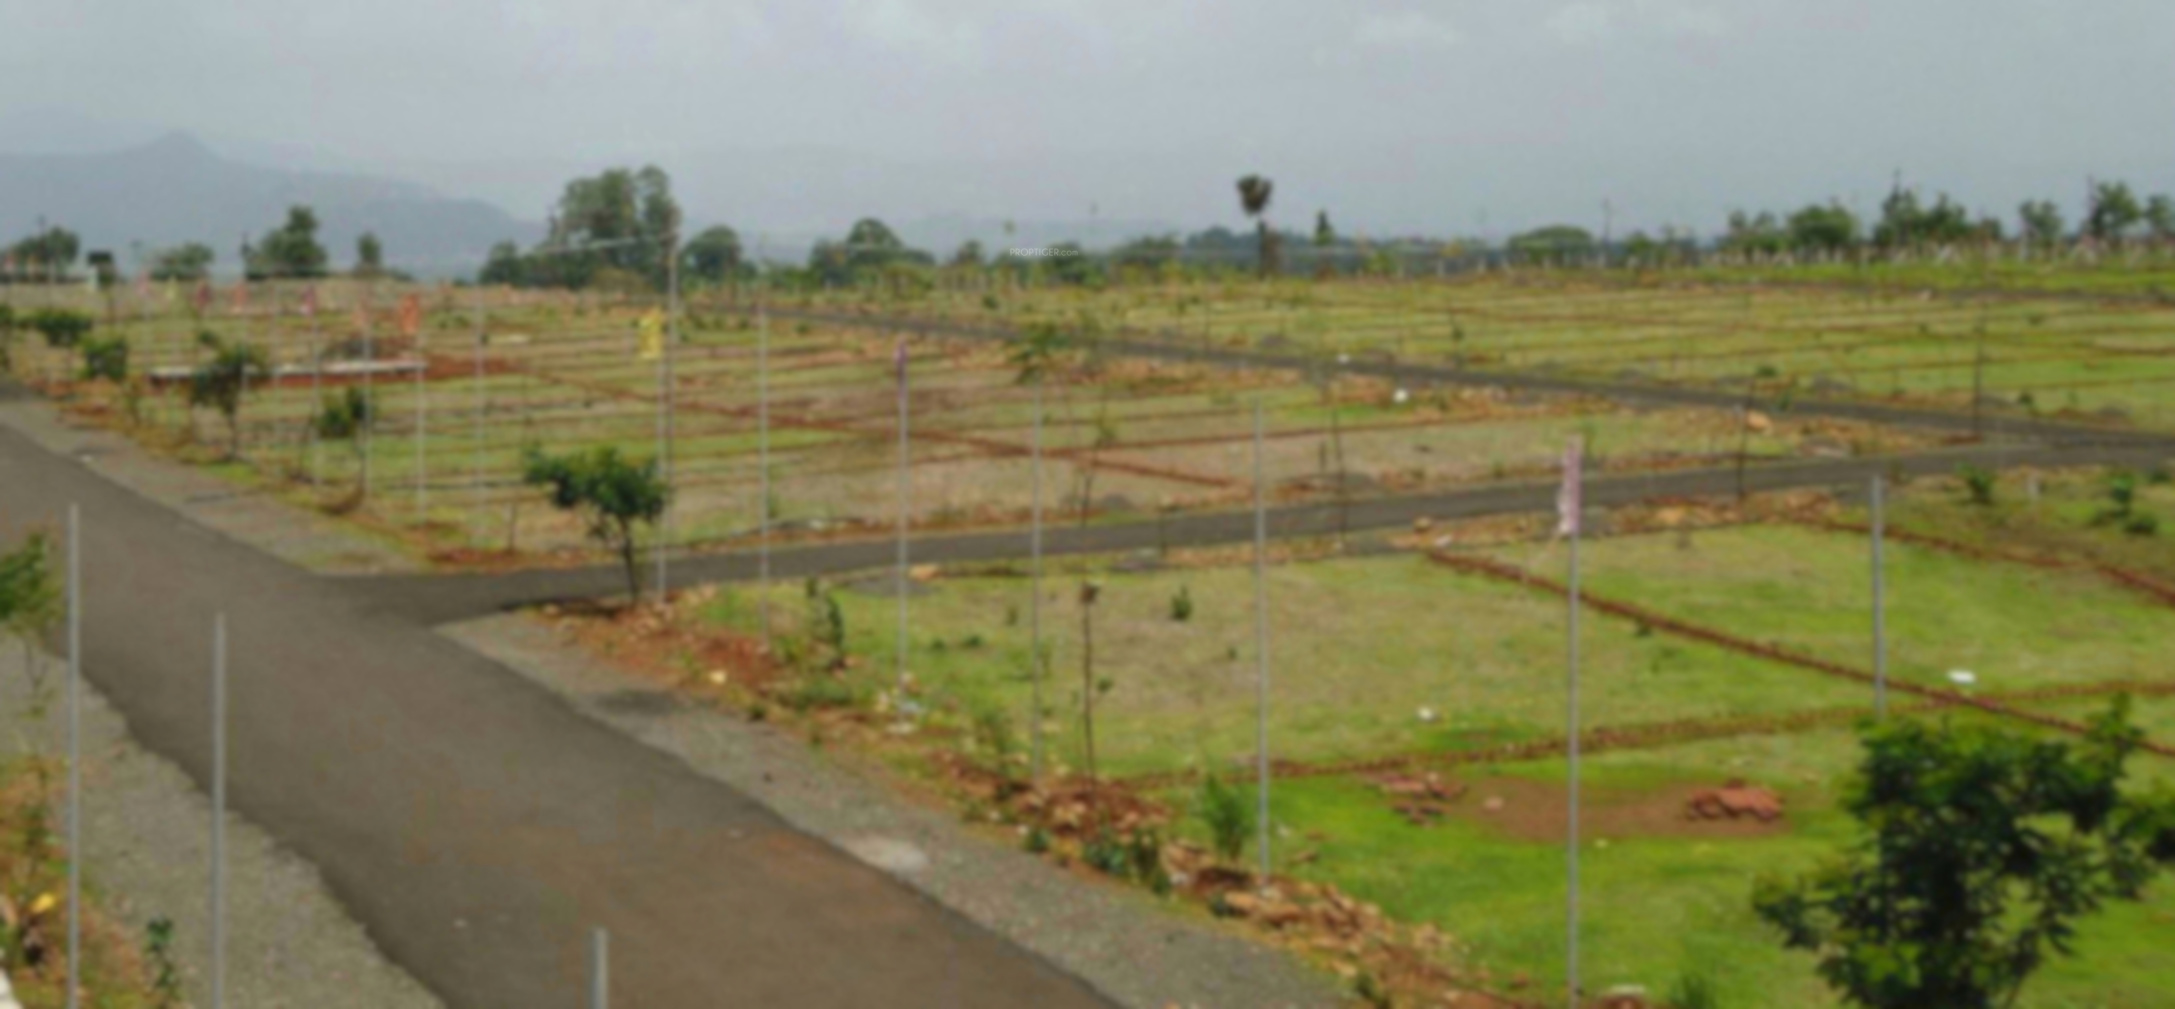 747 sq ft Plot for Sale in Mr Sachin R Bhattad And Hemant ...